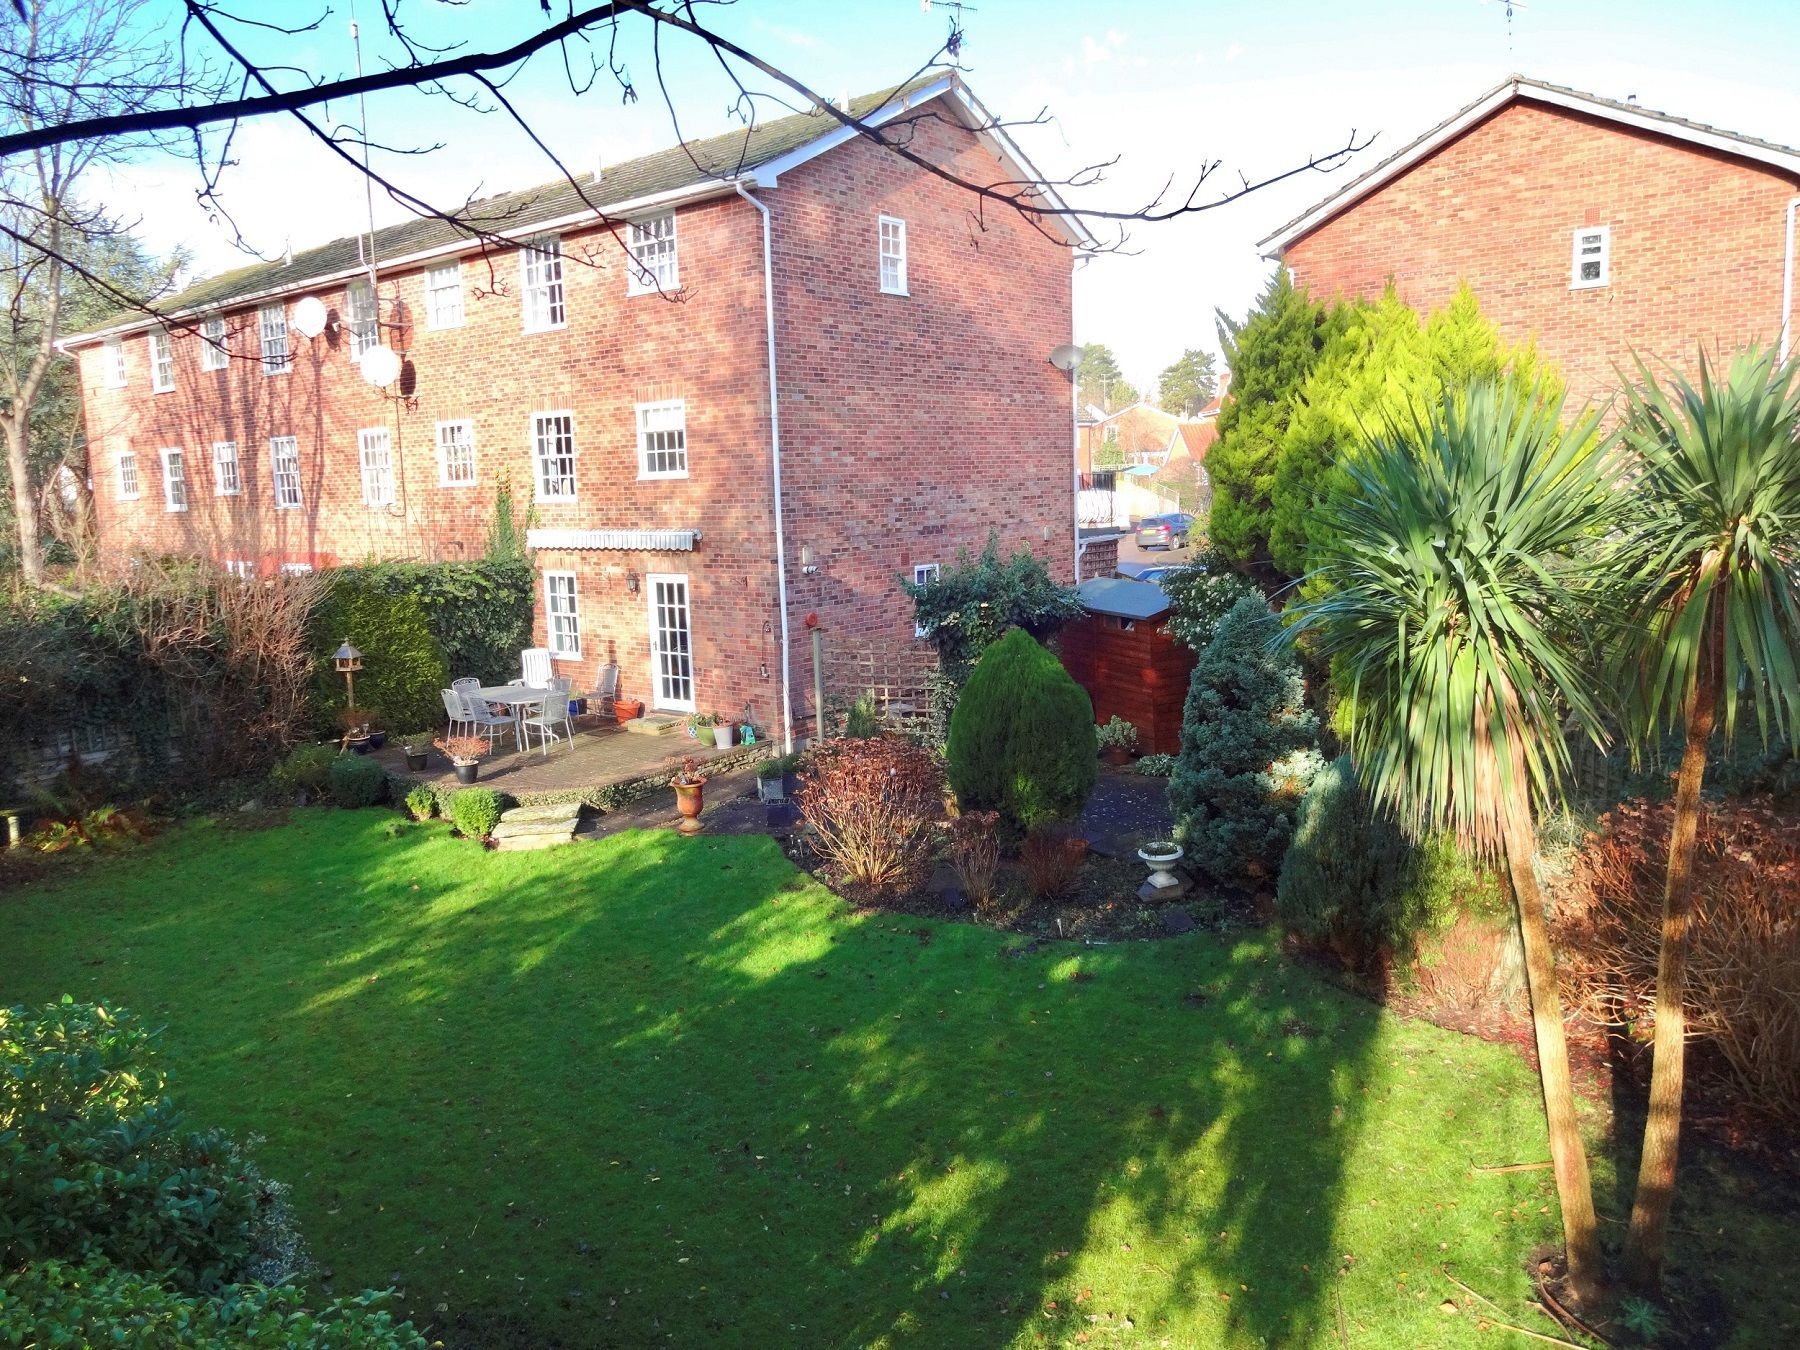 An immaculate 4 bedroom town house with a large garden